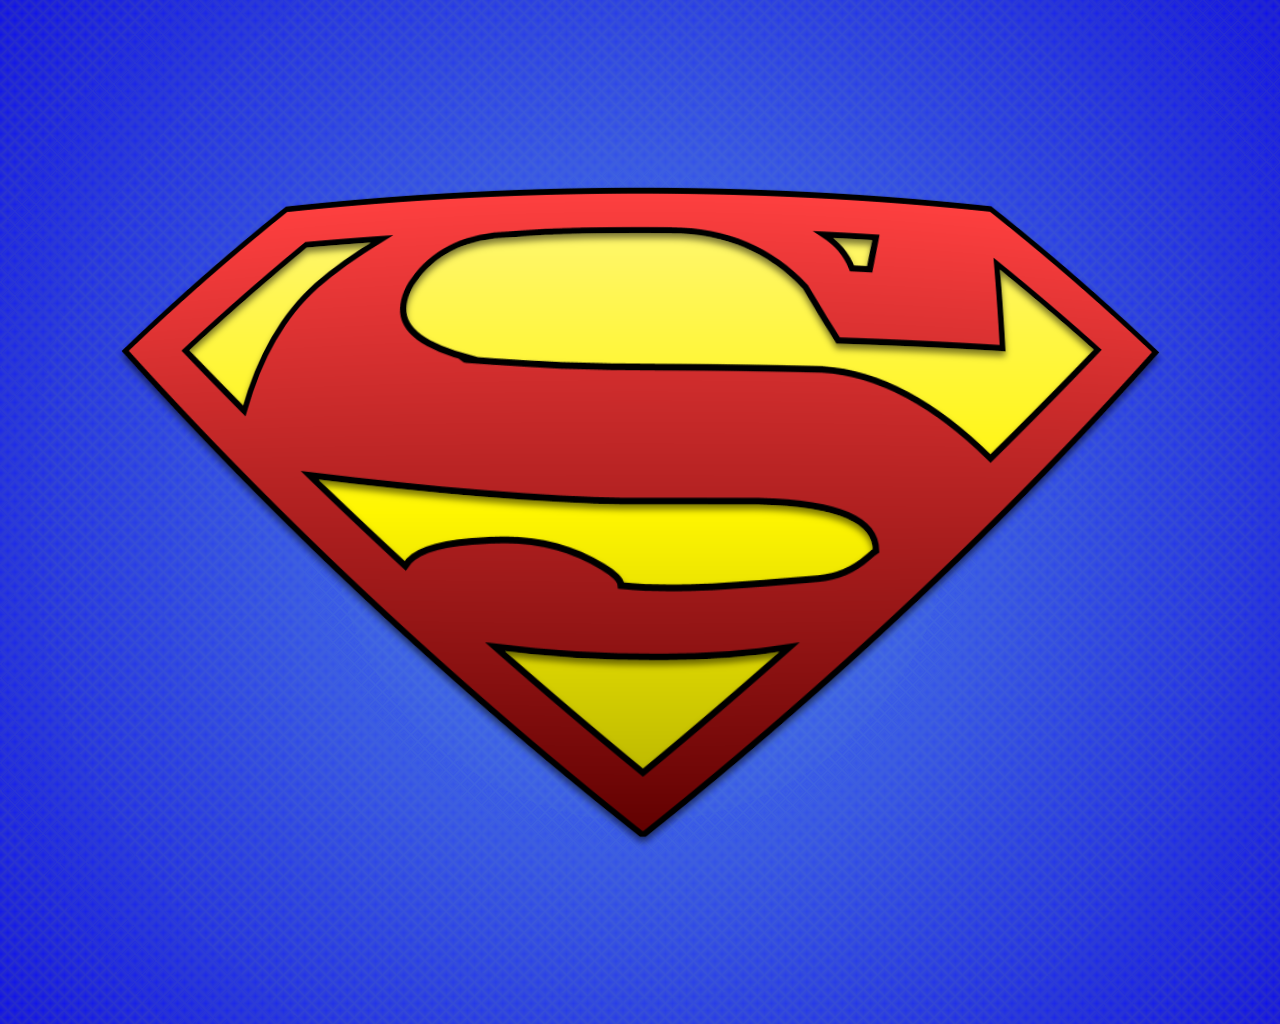 Image Png Superman Best Collections image #19806